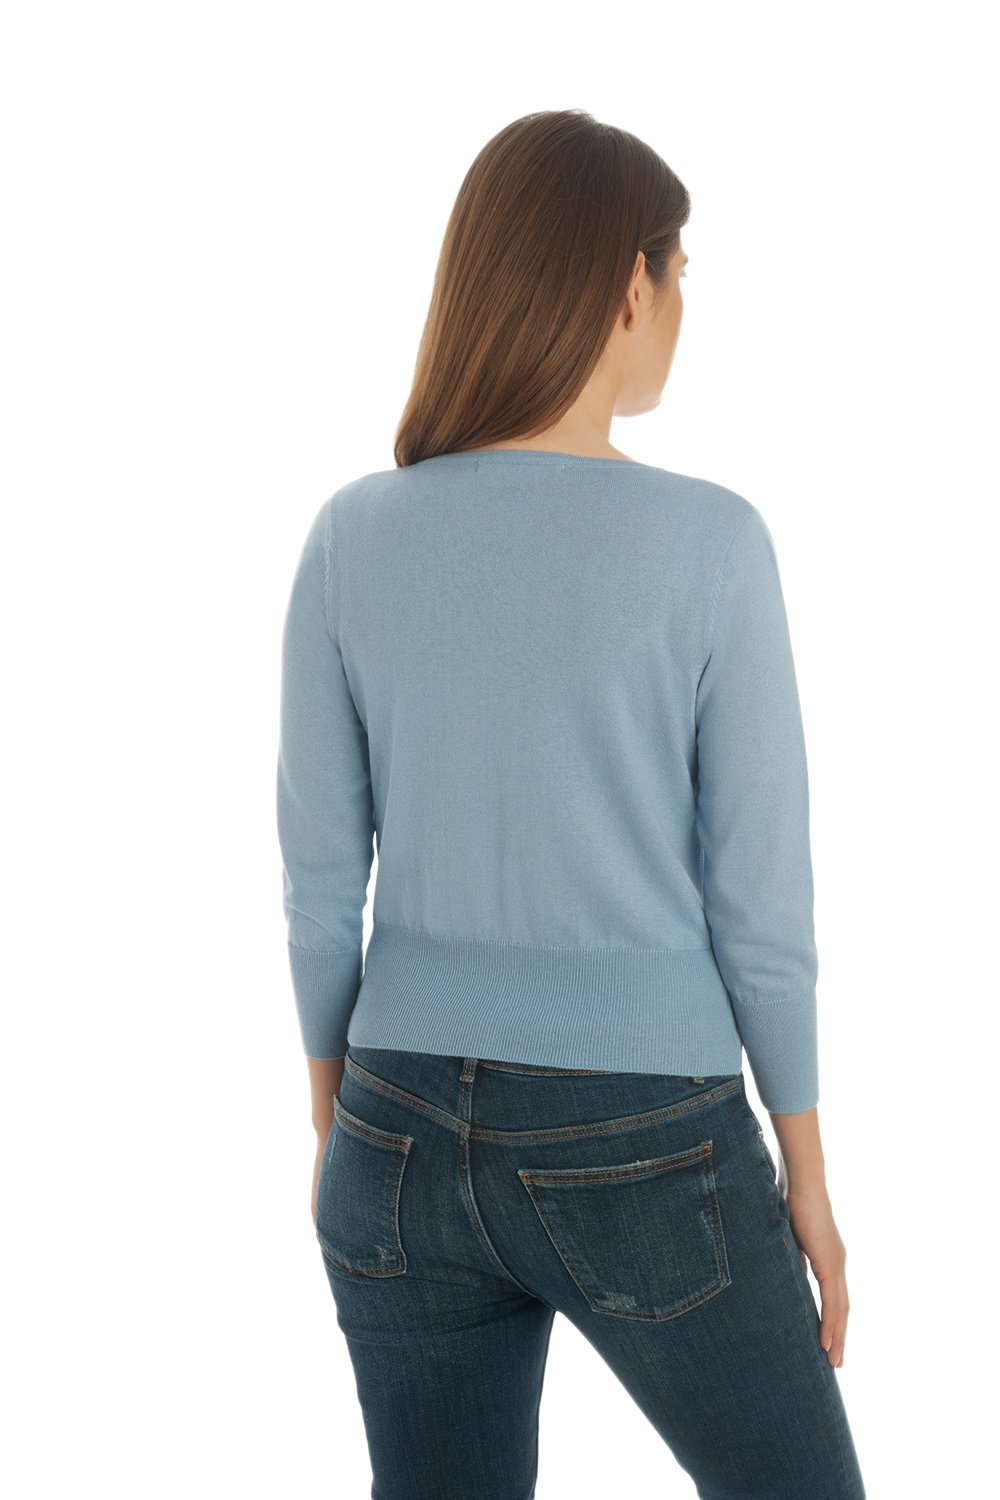 Adorawool - Cardigan Sweater for Women - Luxury Silk & Cotton - Button Down - Cropped Crew - 3/4 Sleeve - Maya Blue - Size Large by Adorawool (Image #4)